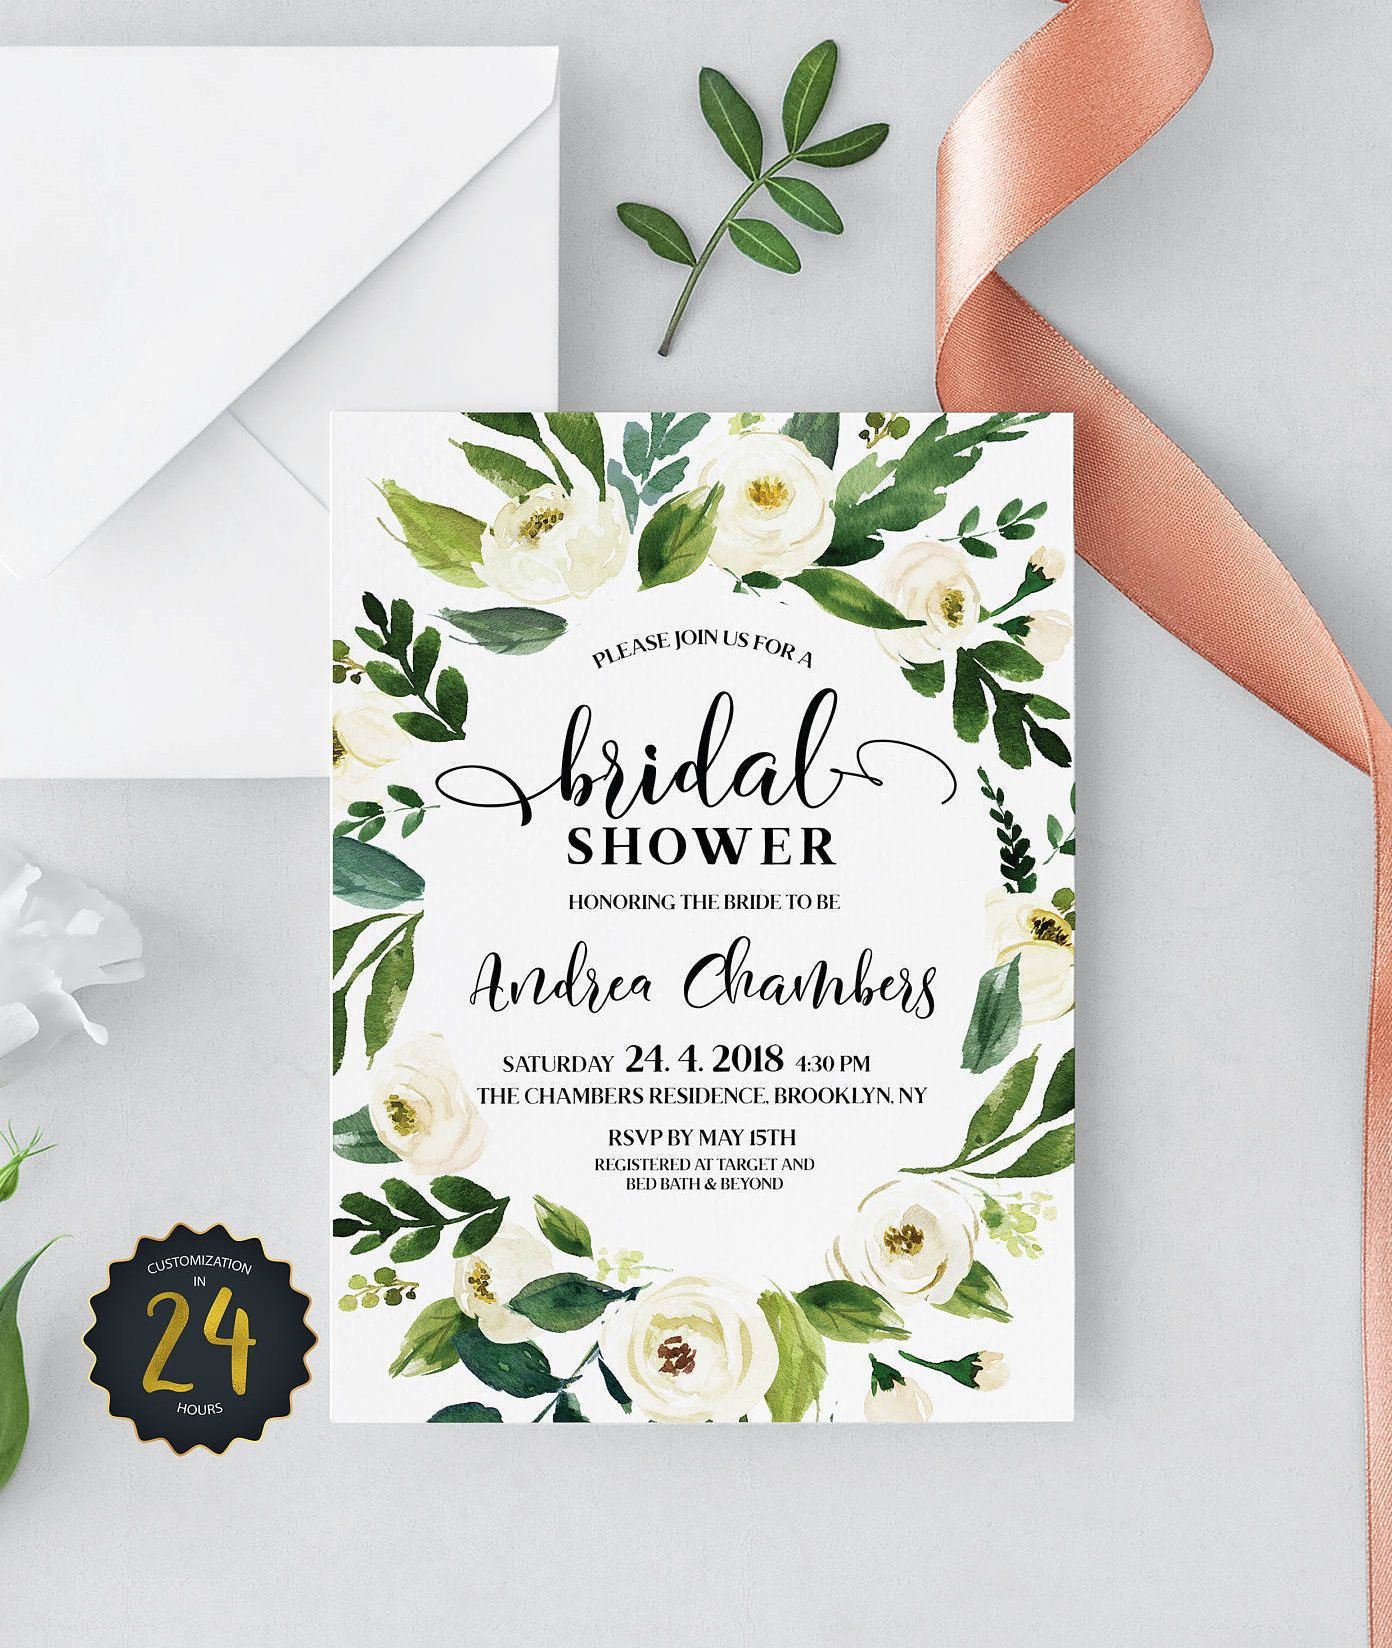 Bridal Shower Template Floral Bridal Shower Invitation  Printable Boho Bridal Shower .